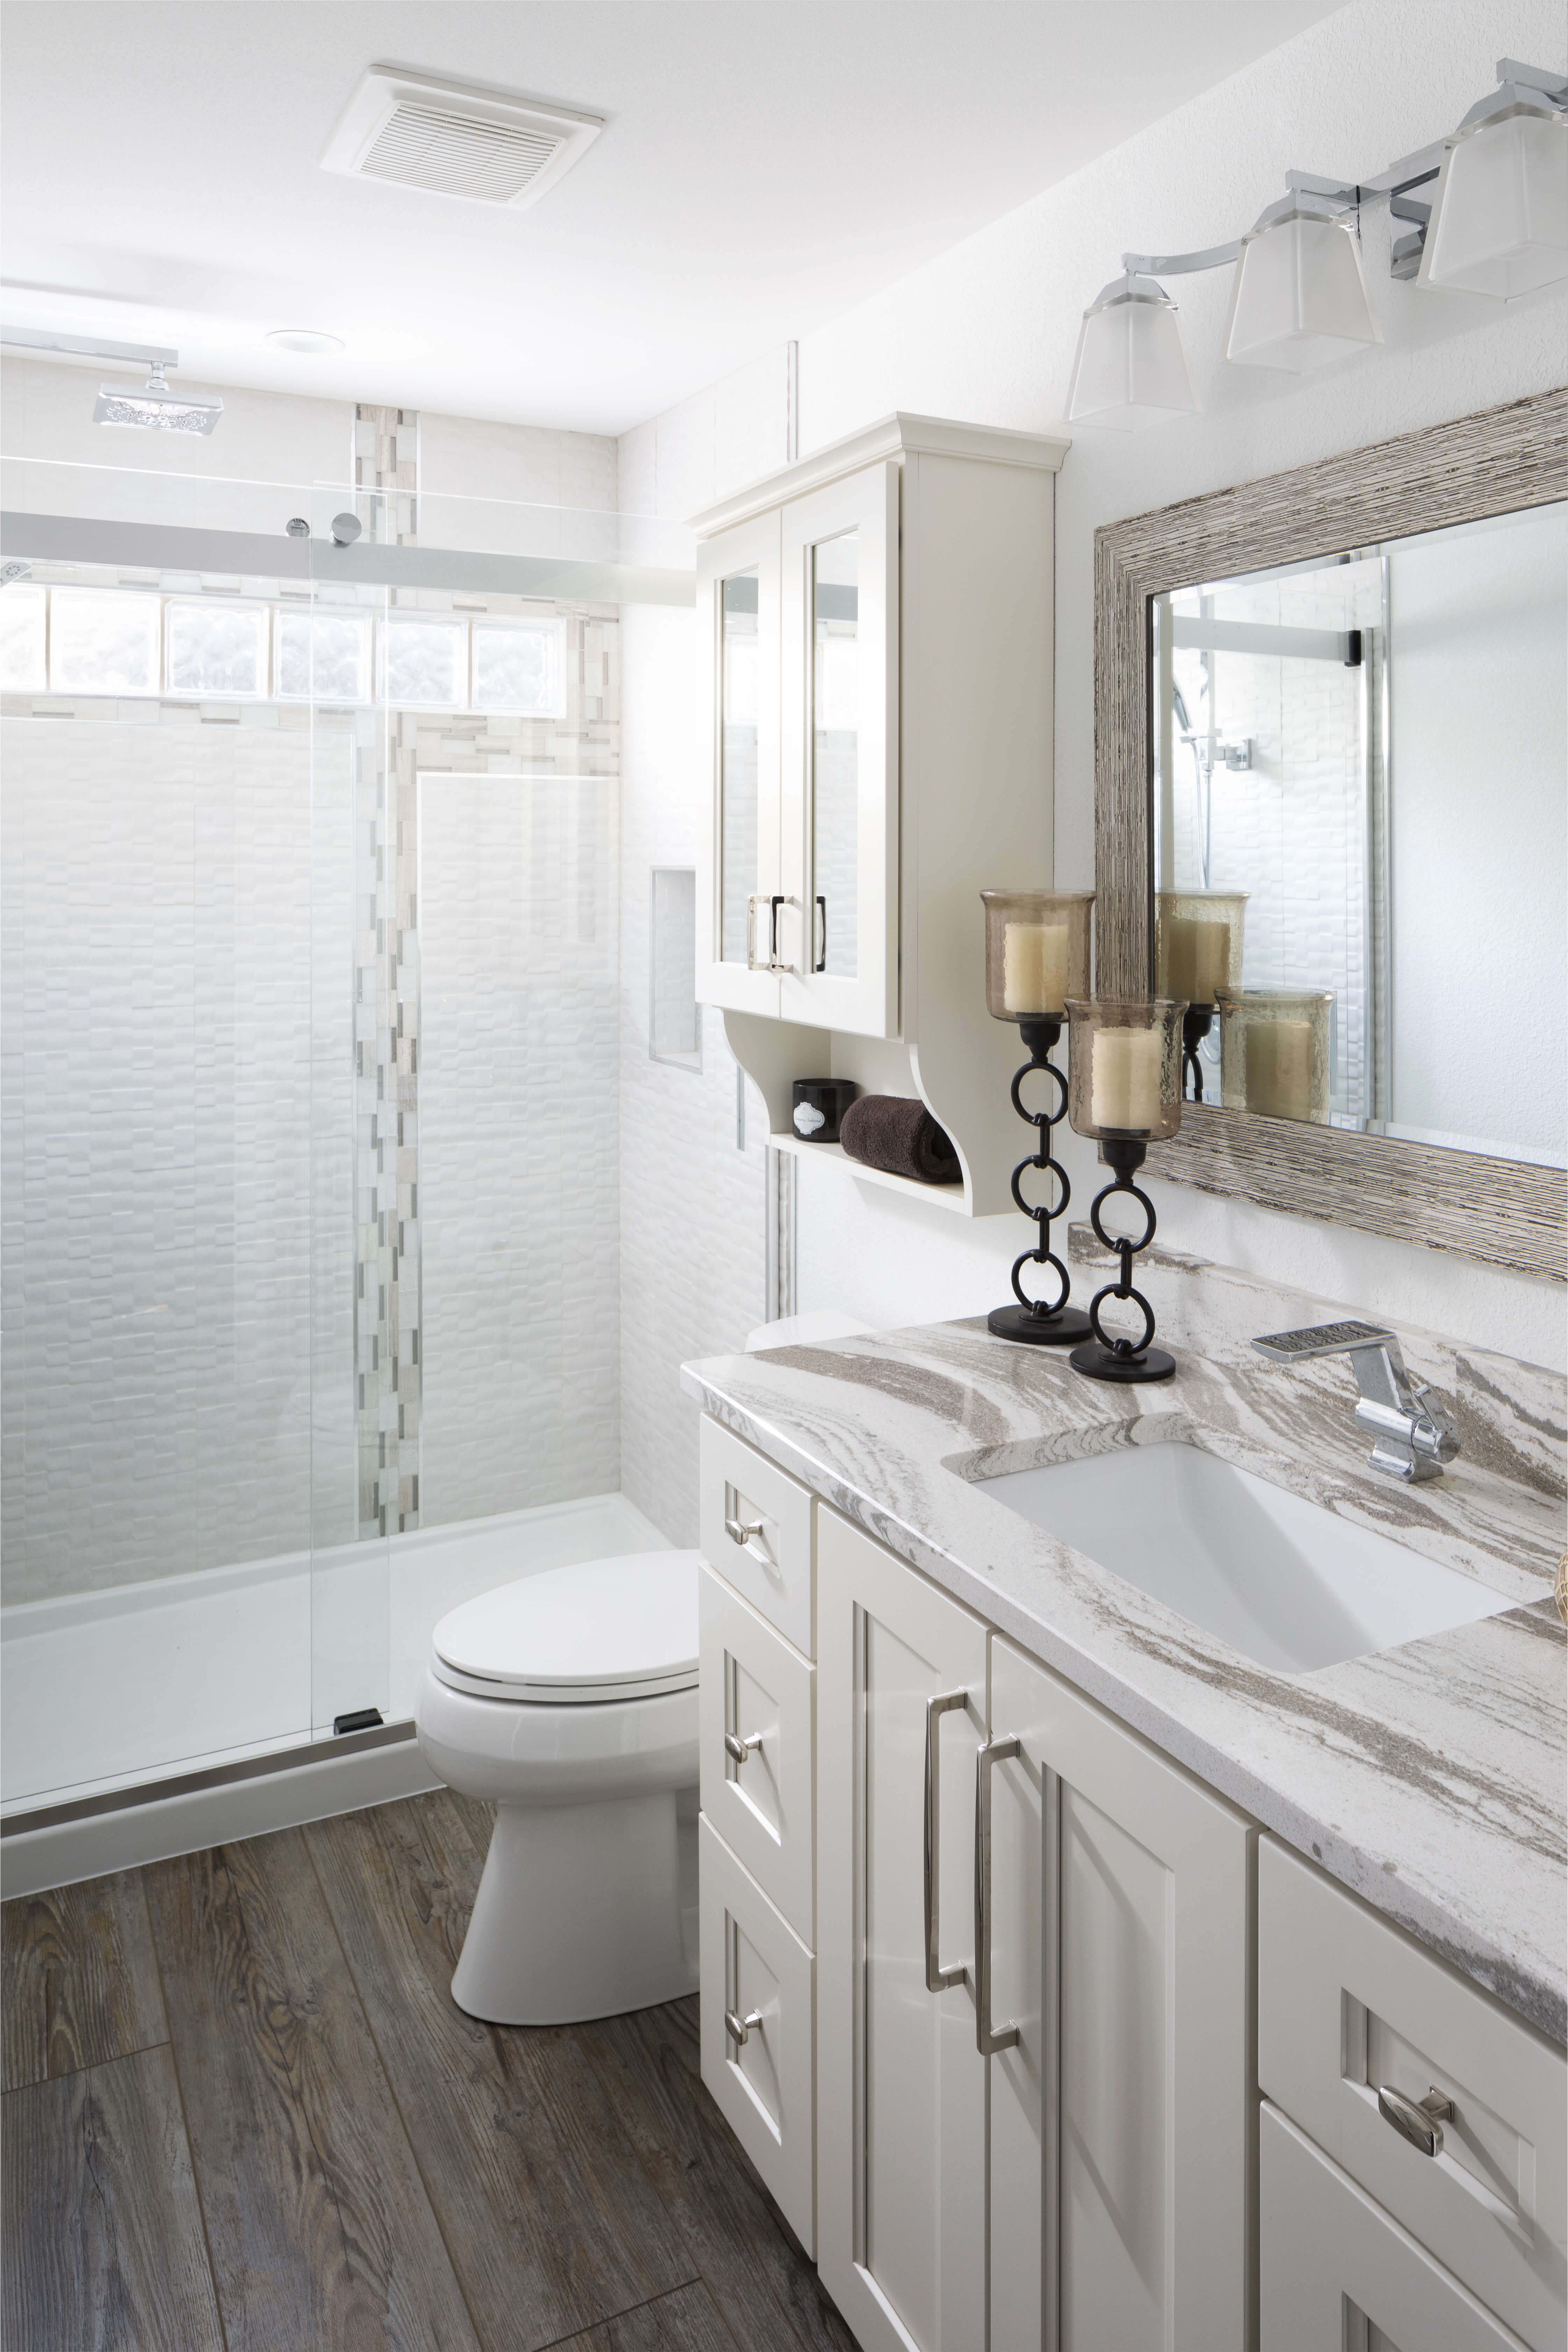 A newly remodeled bathroom with whote painted cabinets and mirrored cabinet doors.